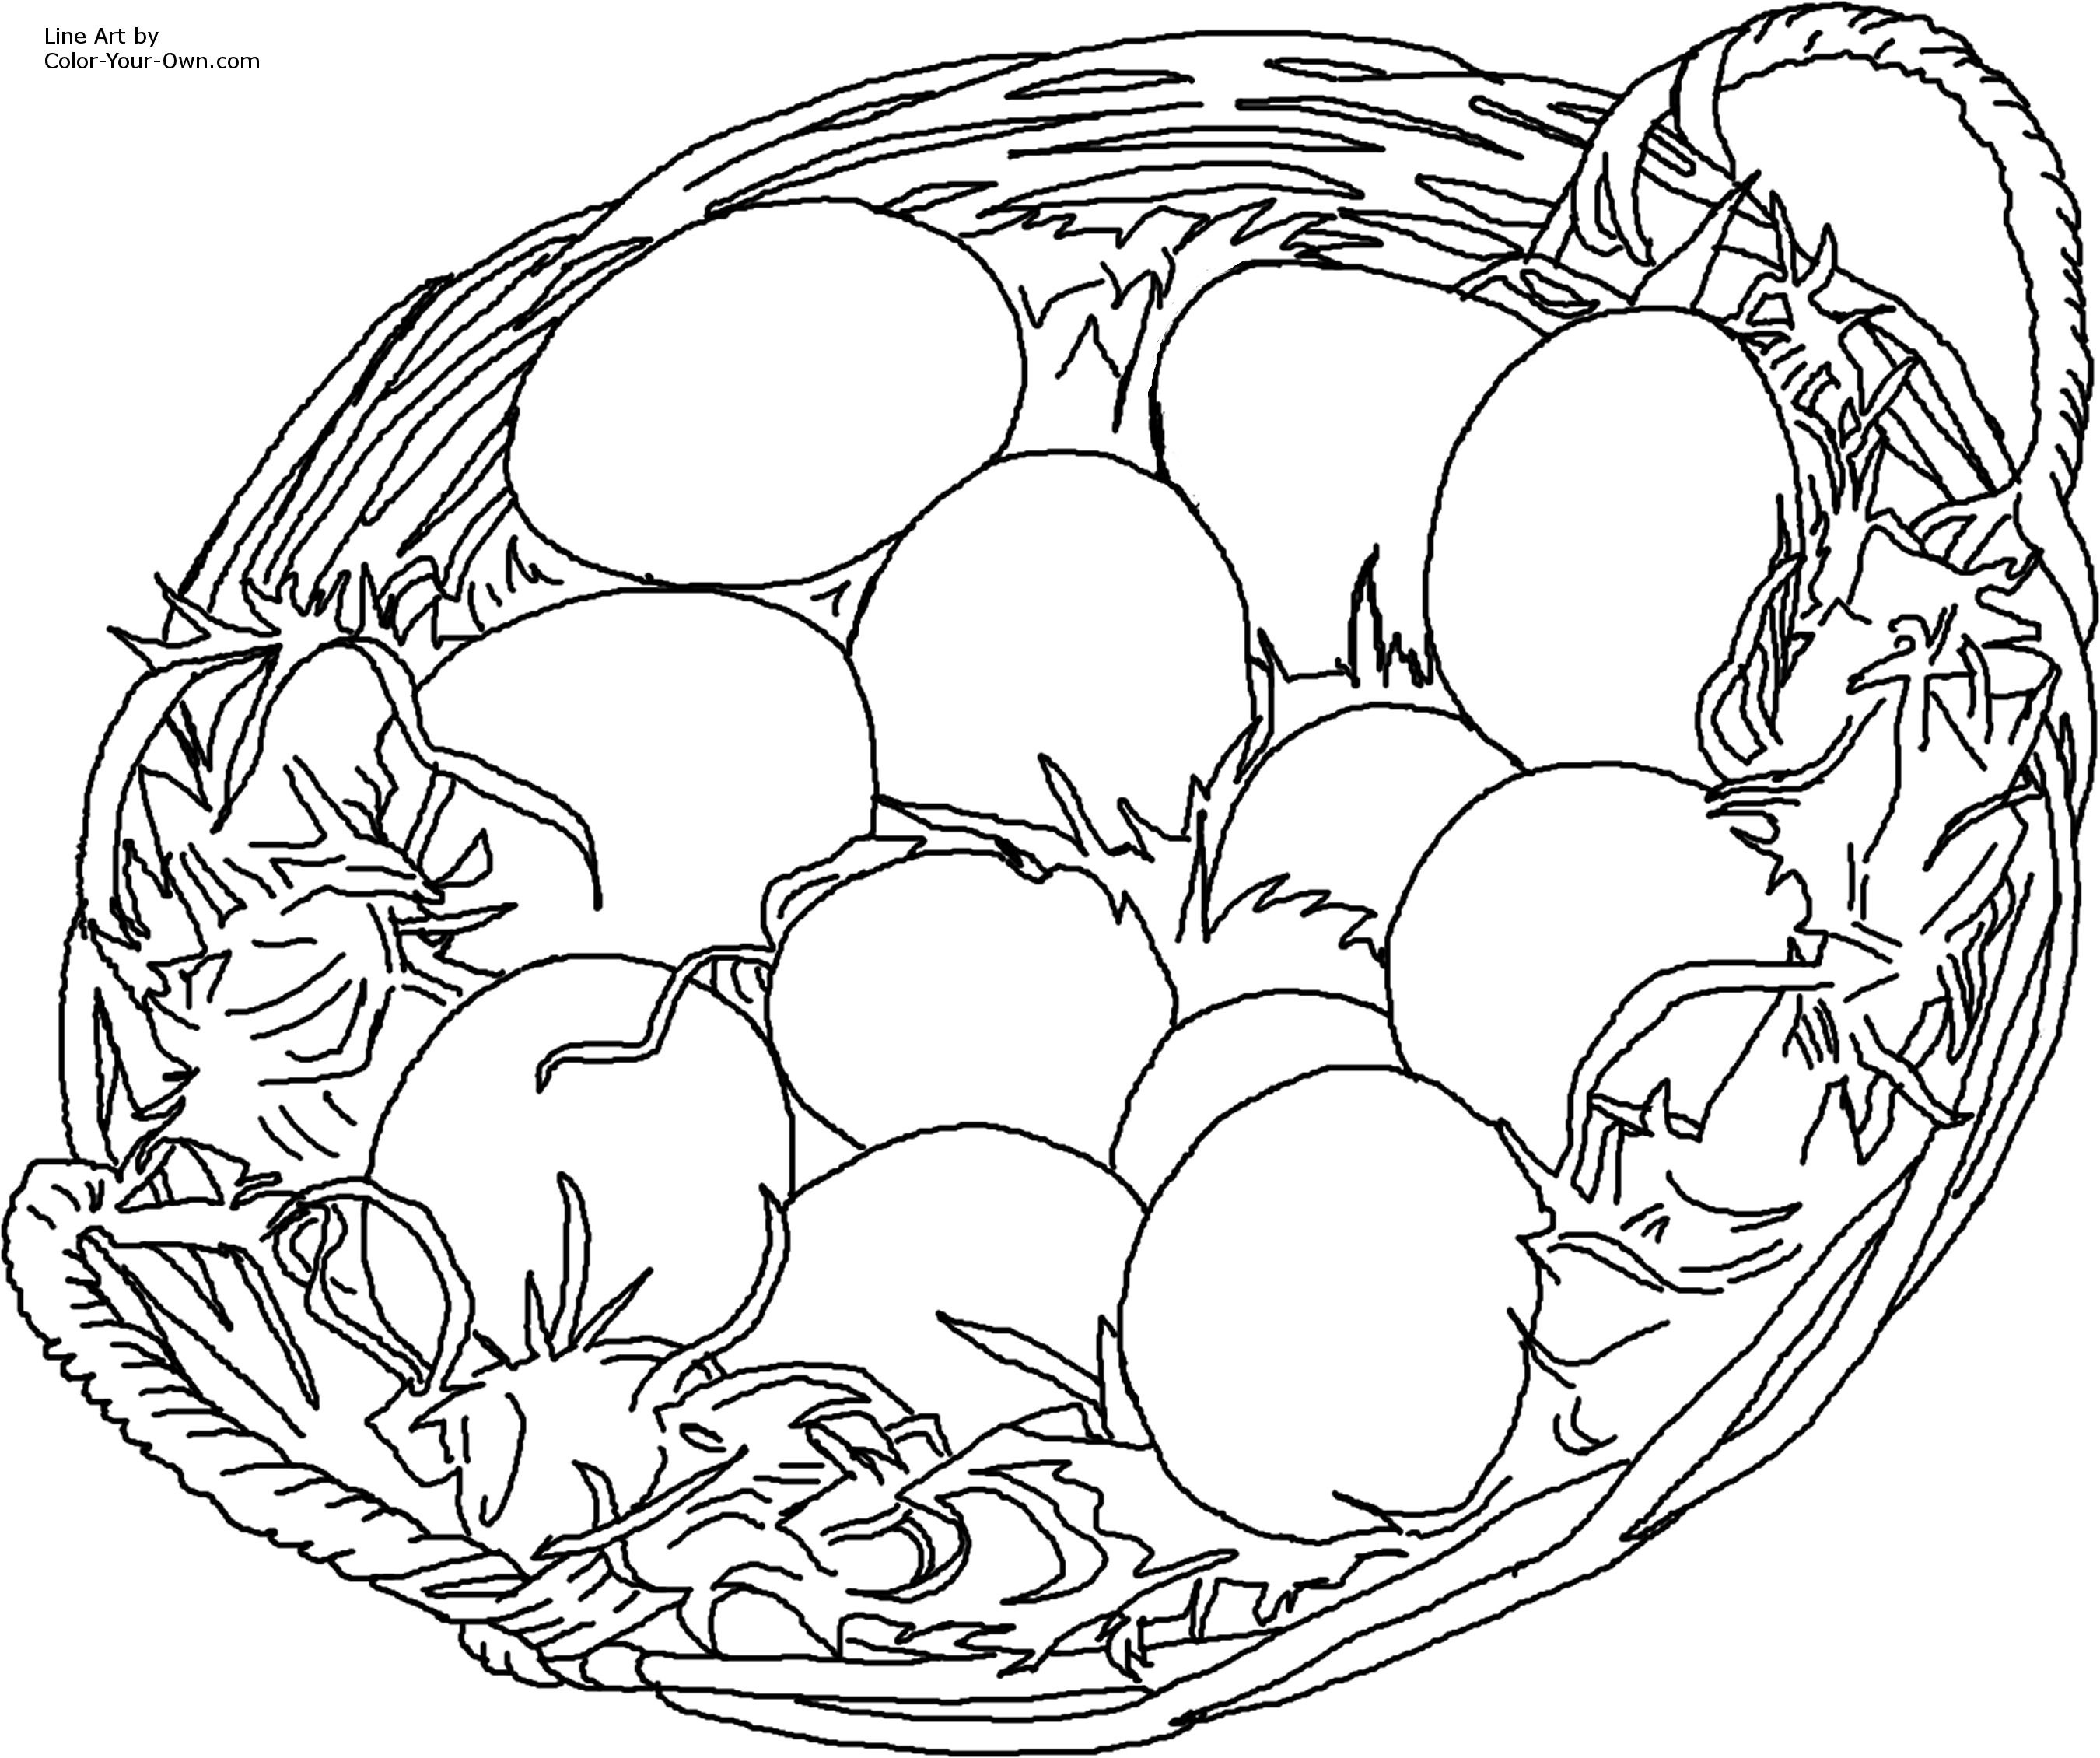 printable size click here return to the coloring pages index - Coloring Pages Easter Baskets